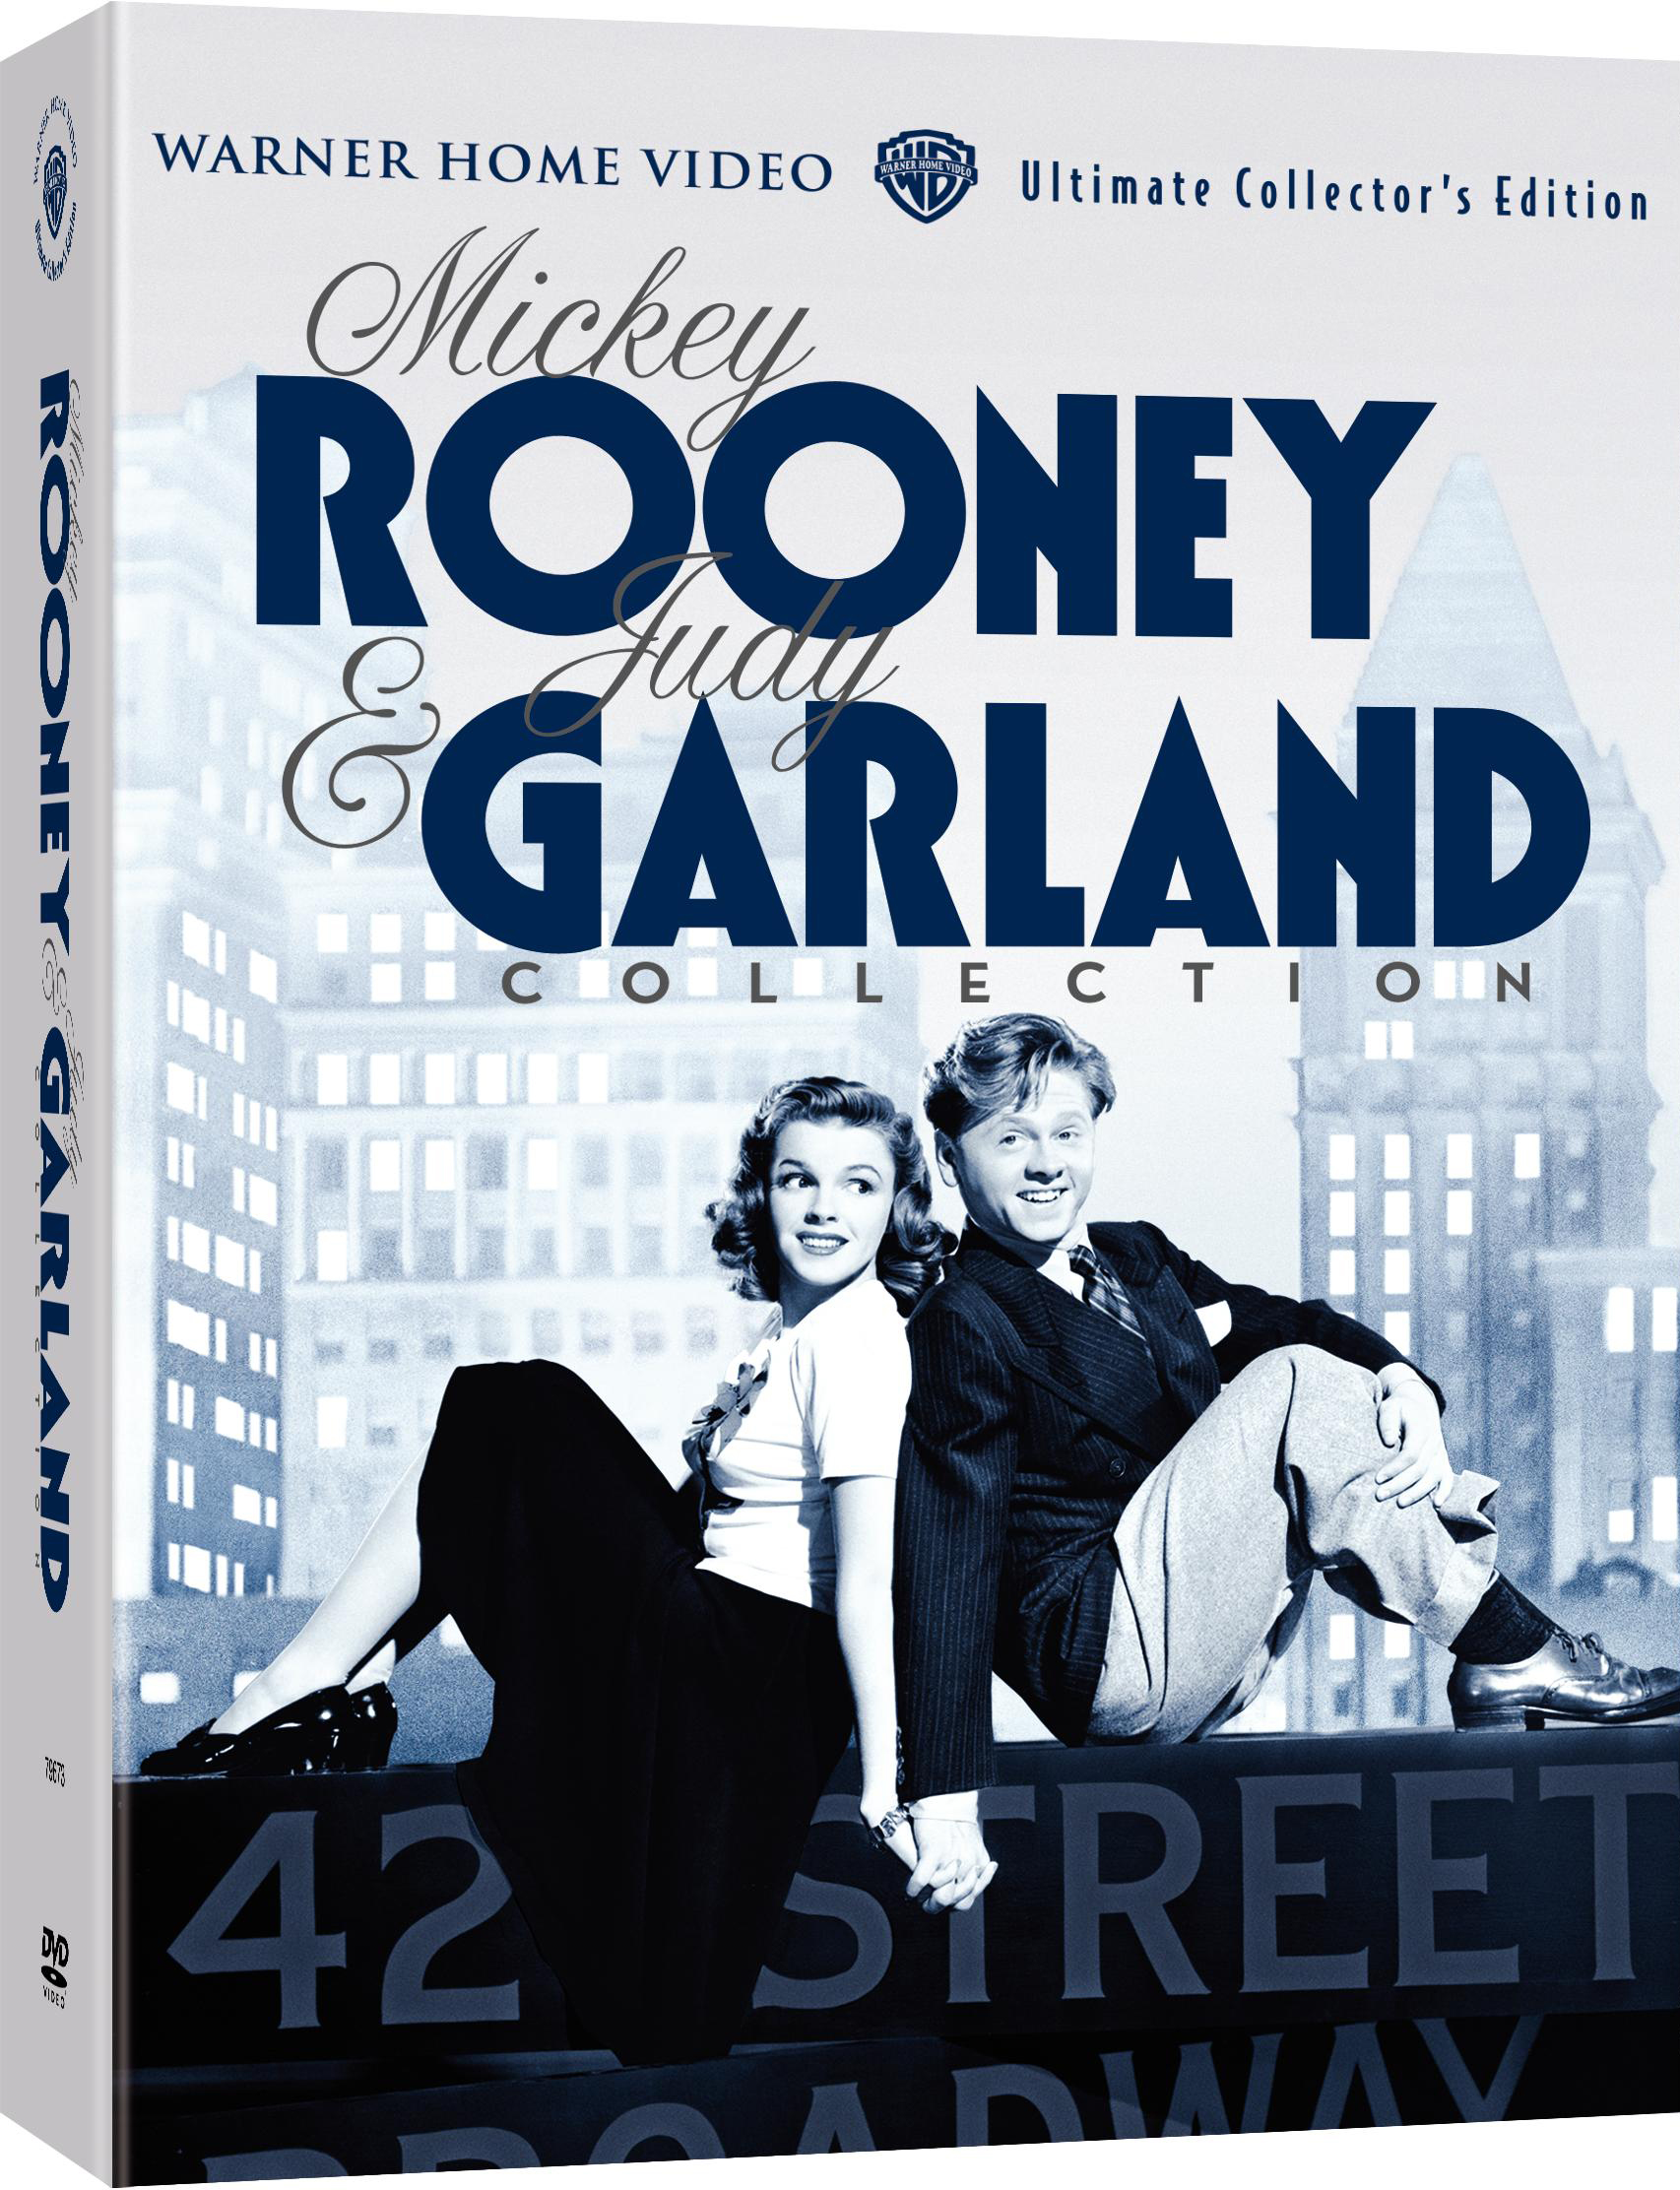 Judy Garland and Mickey Rooney DVD boxed set